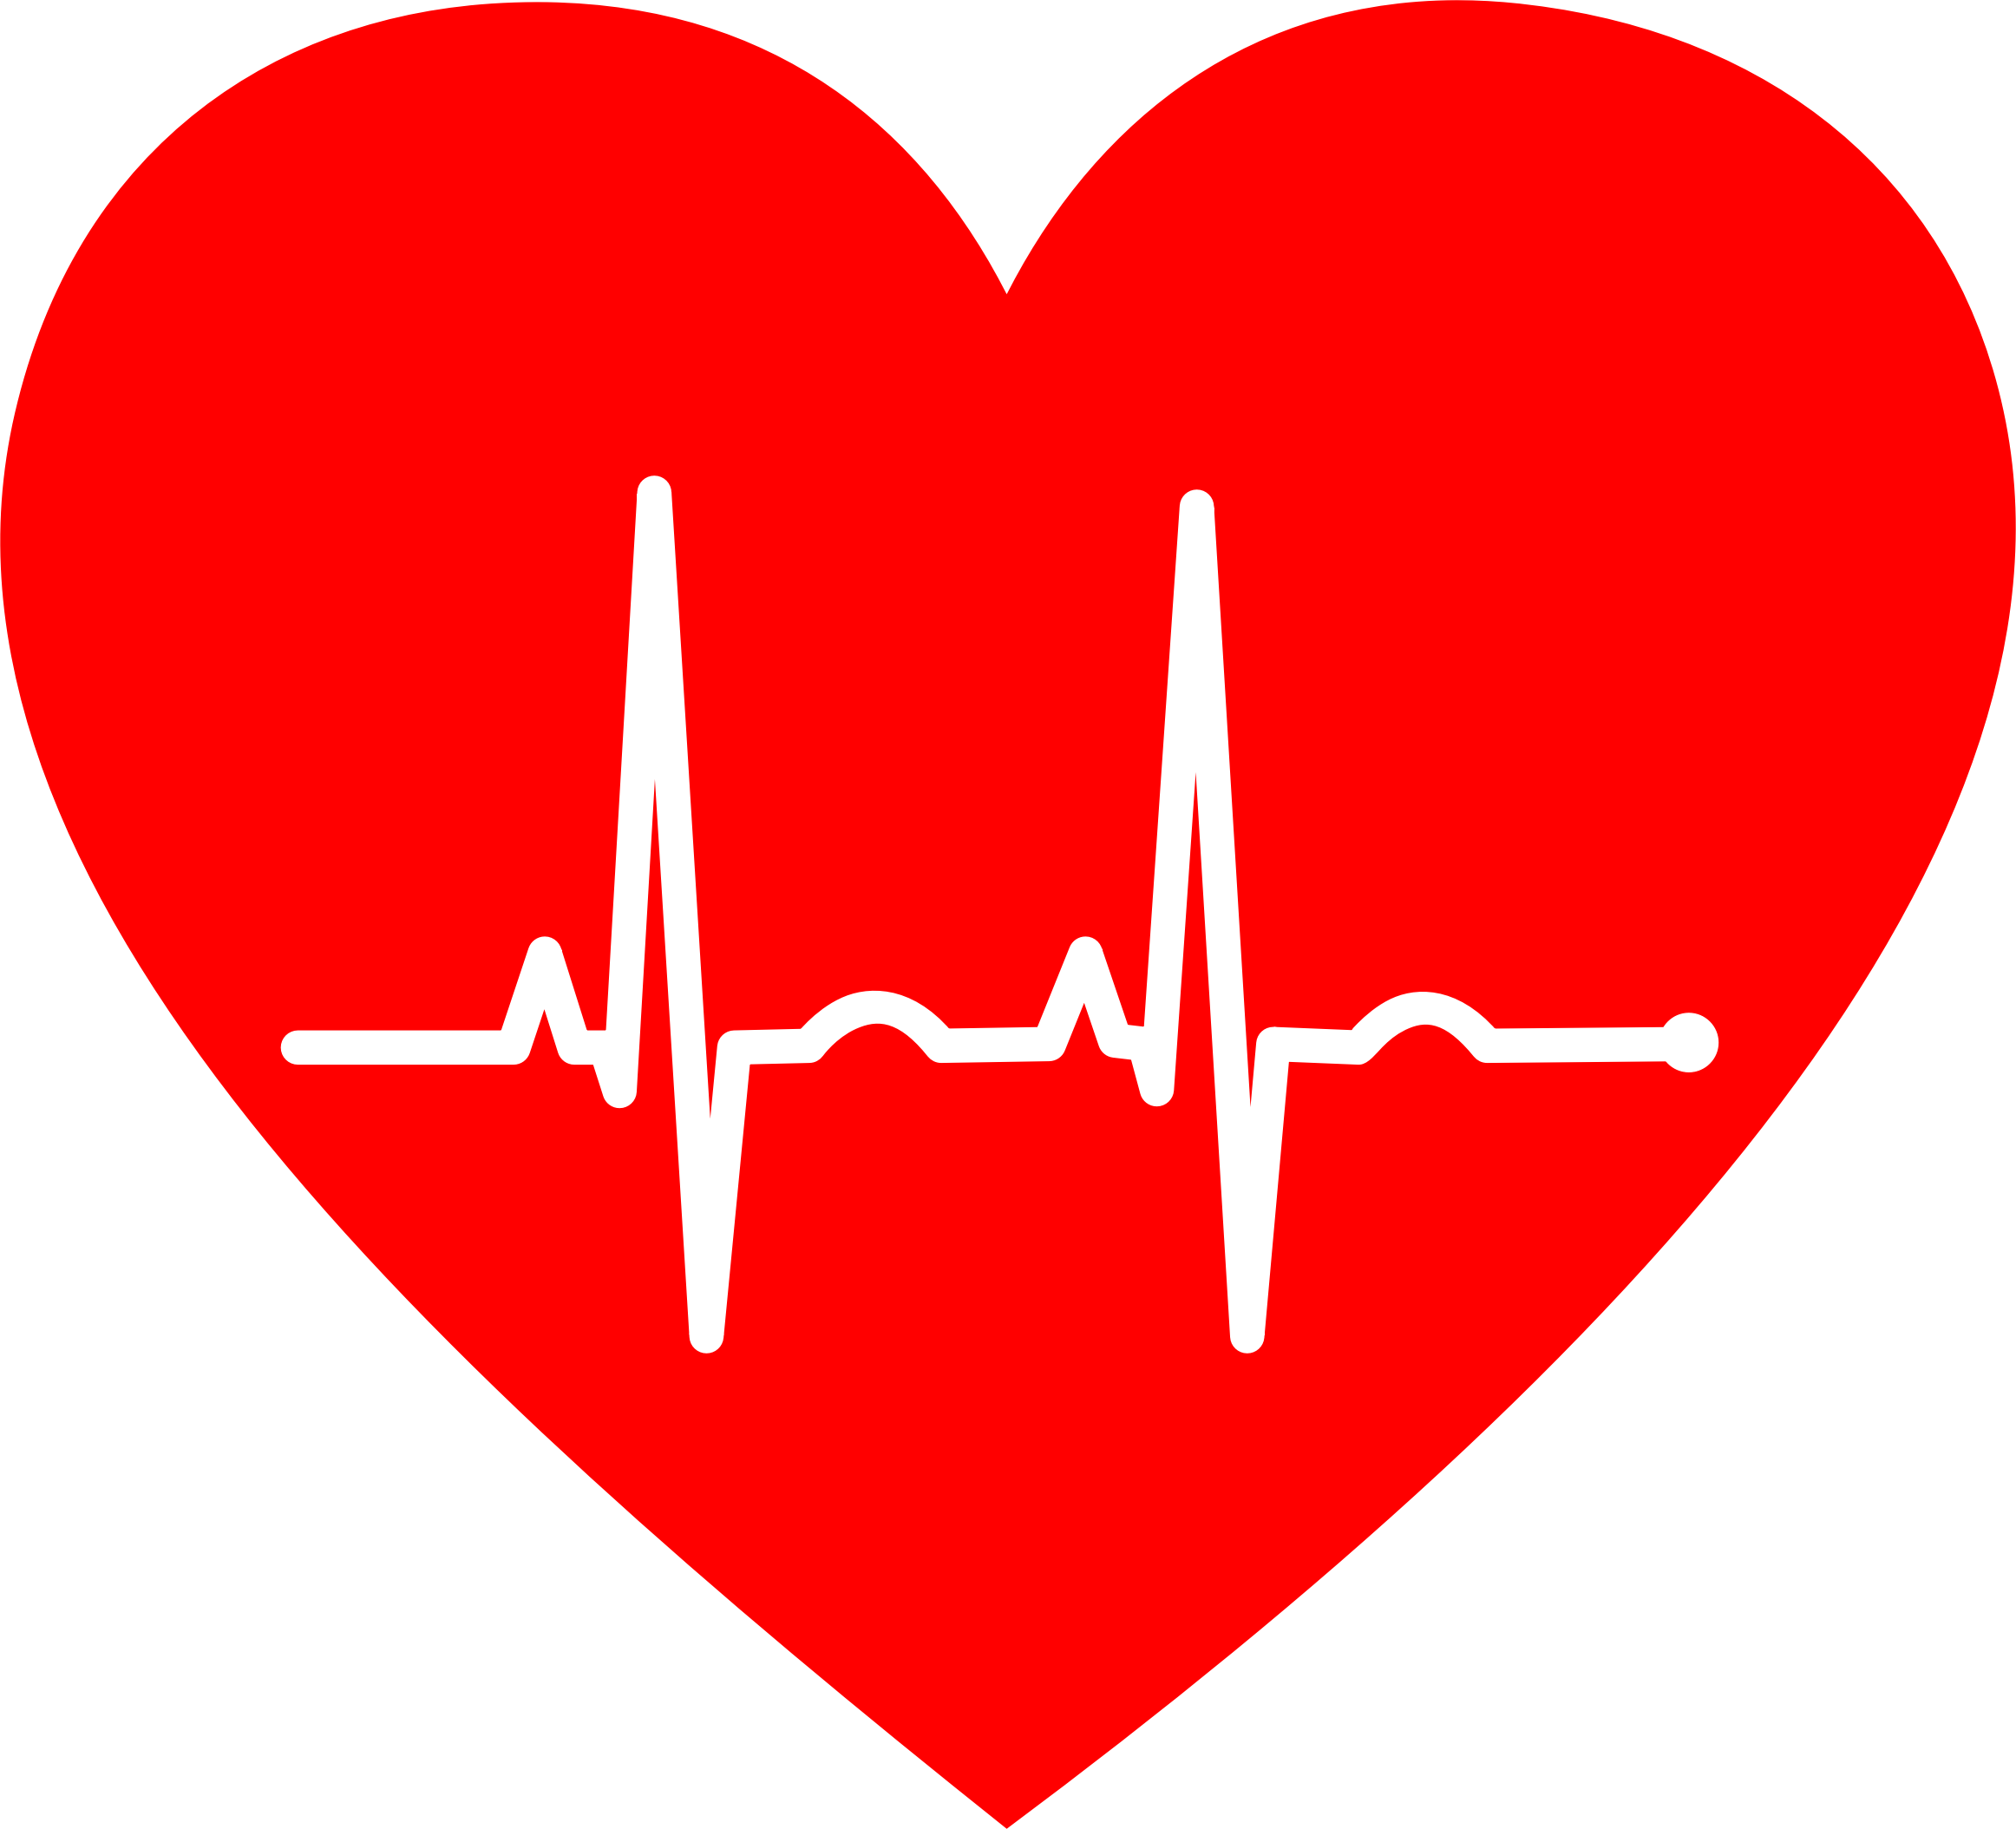 clipart royalty free library Ekg clipart. Heart big image png